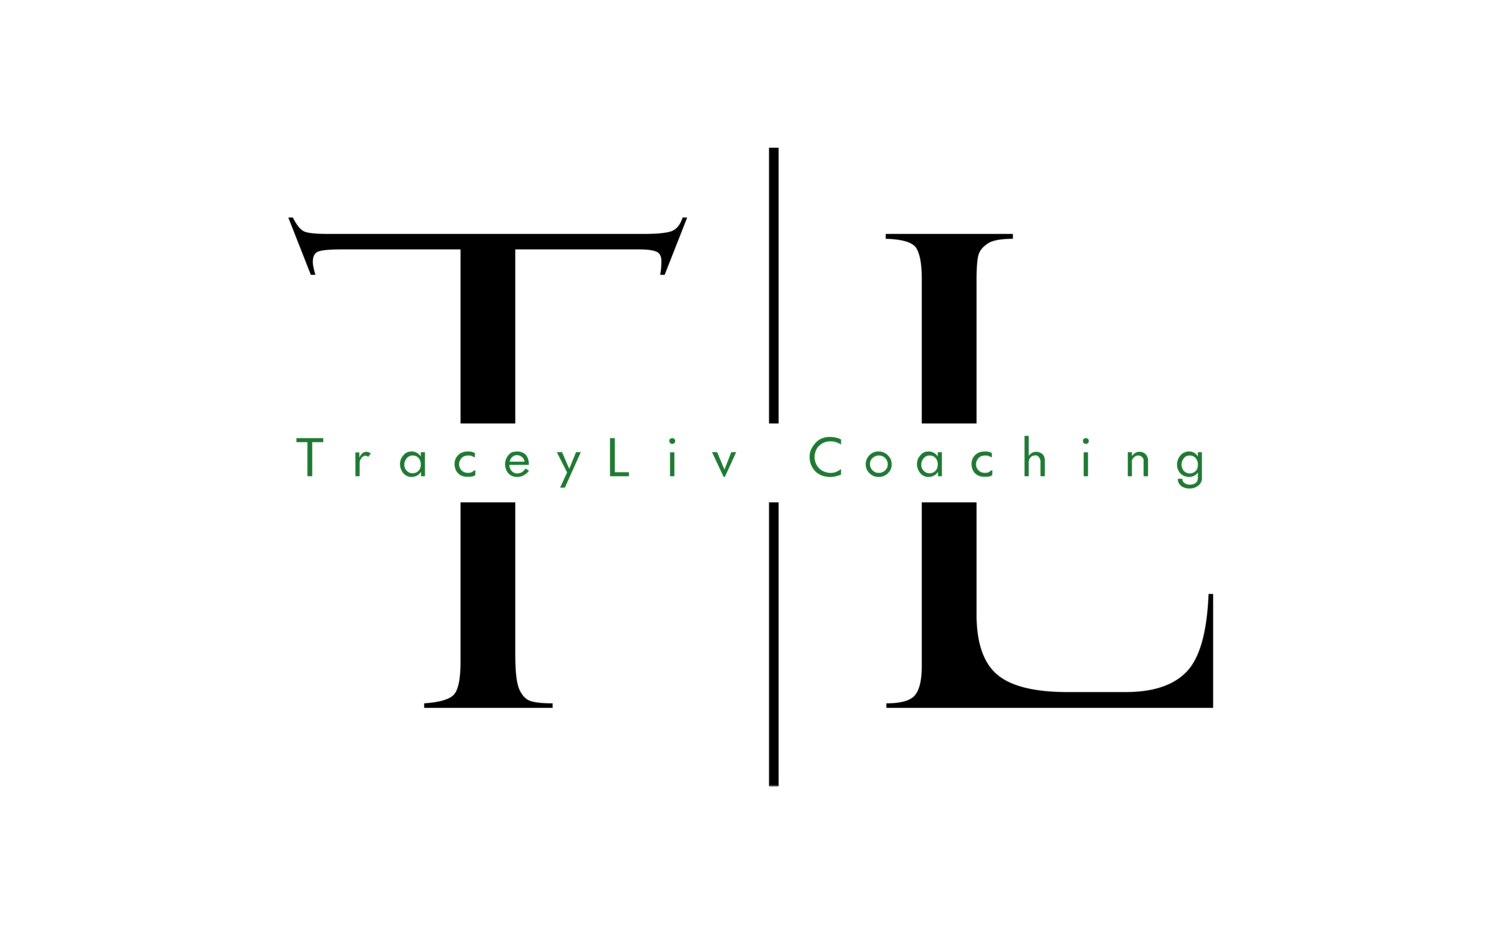 TraceyLiv · Coach · Consulting · Training · London